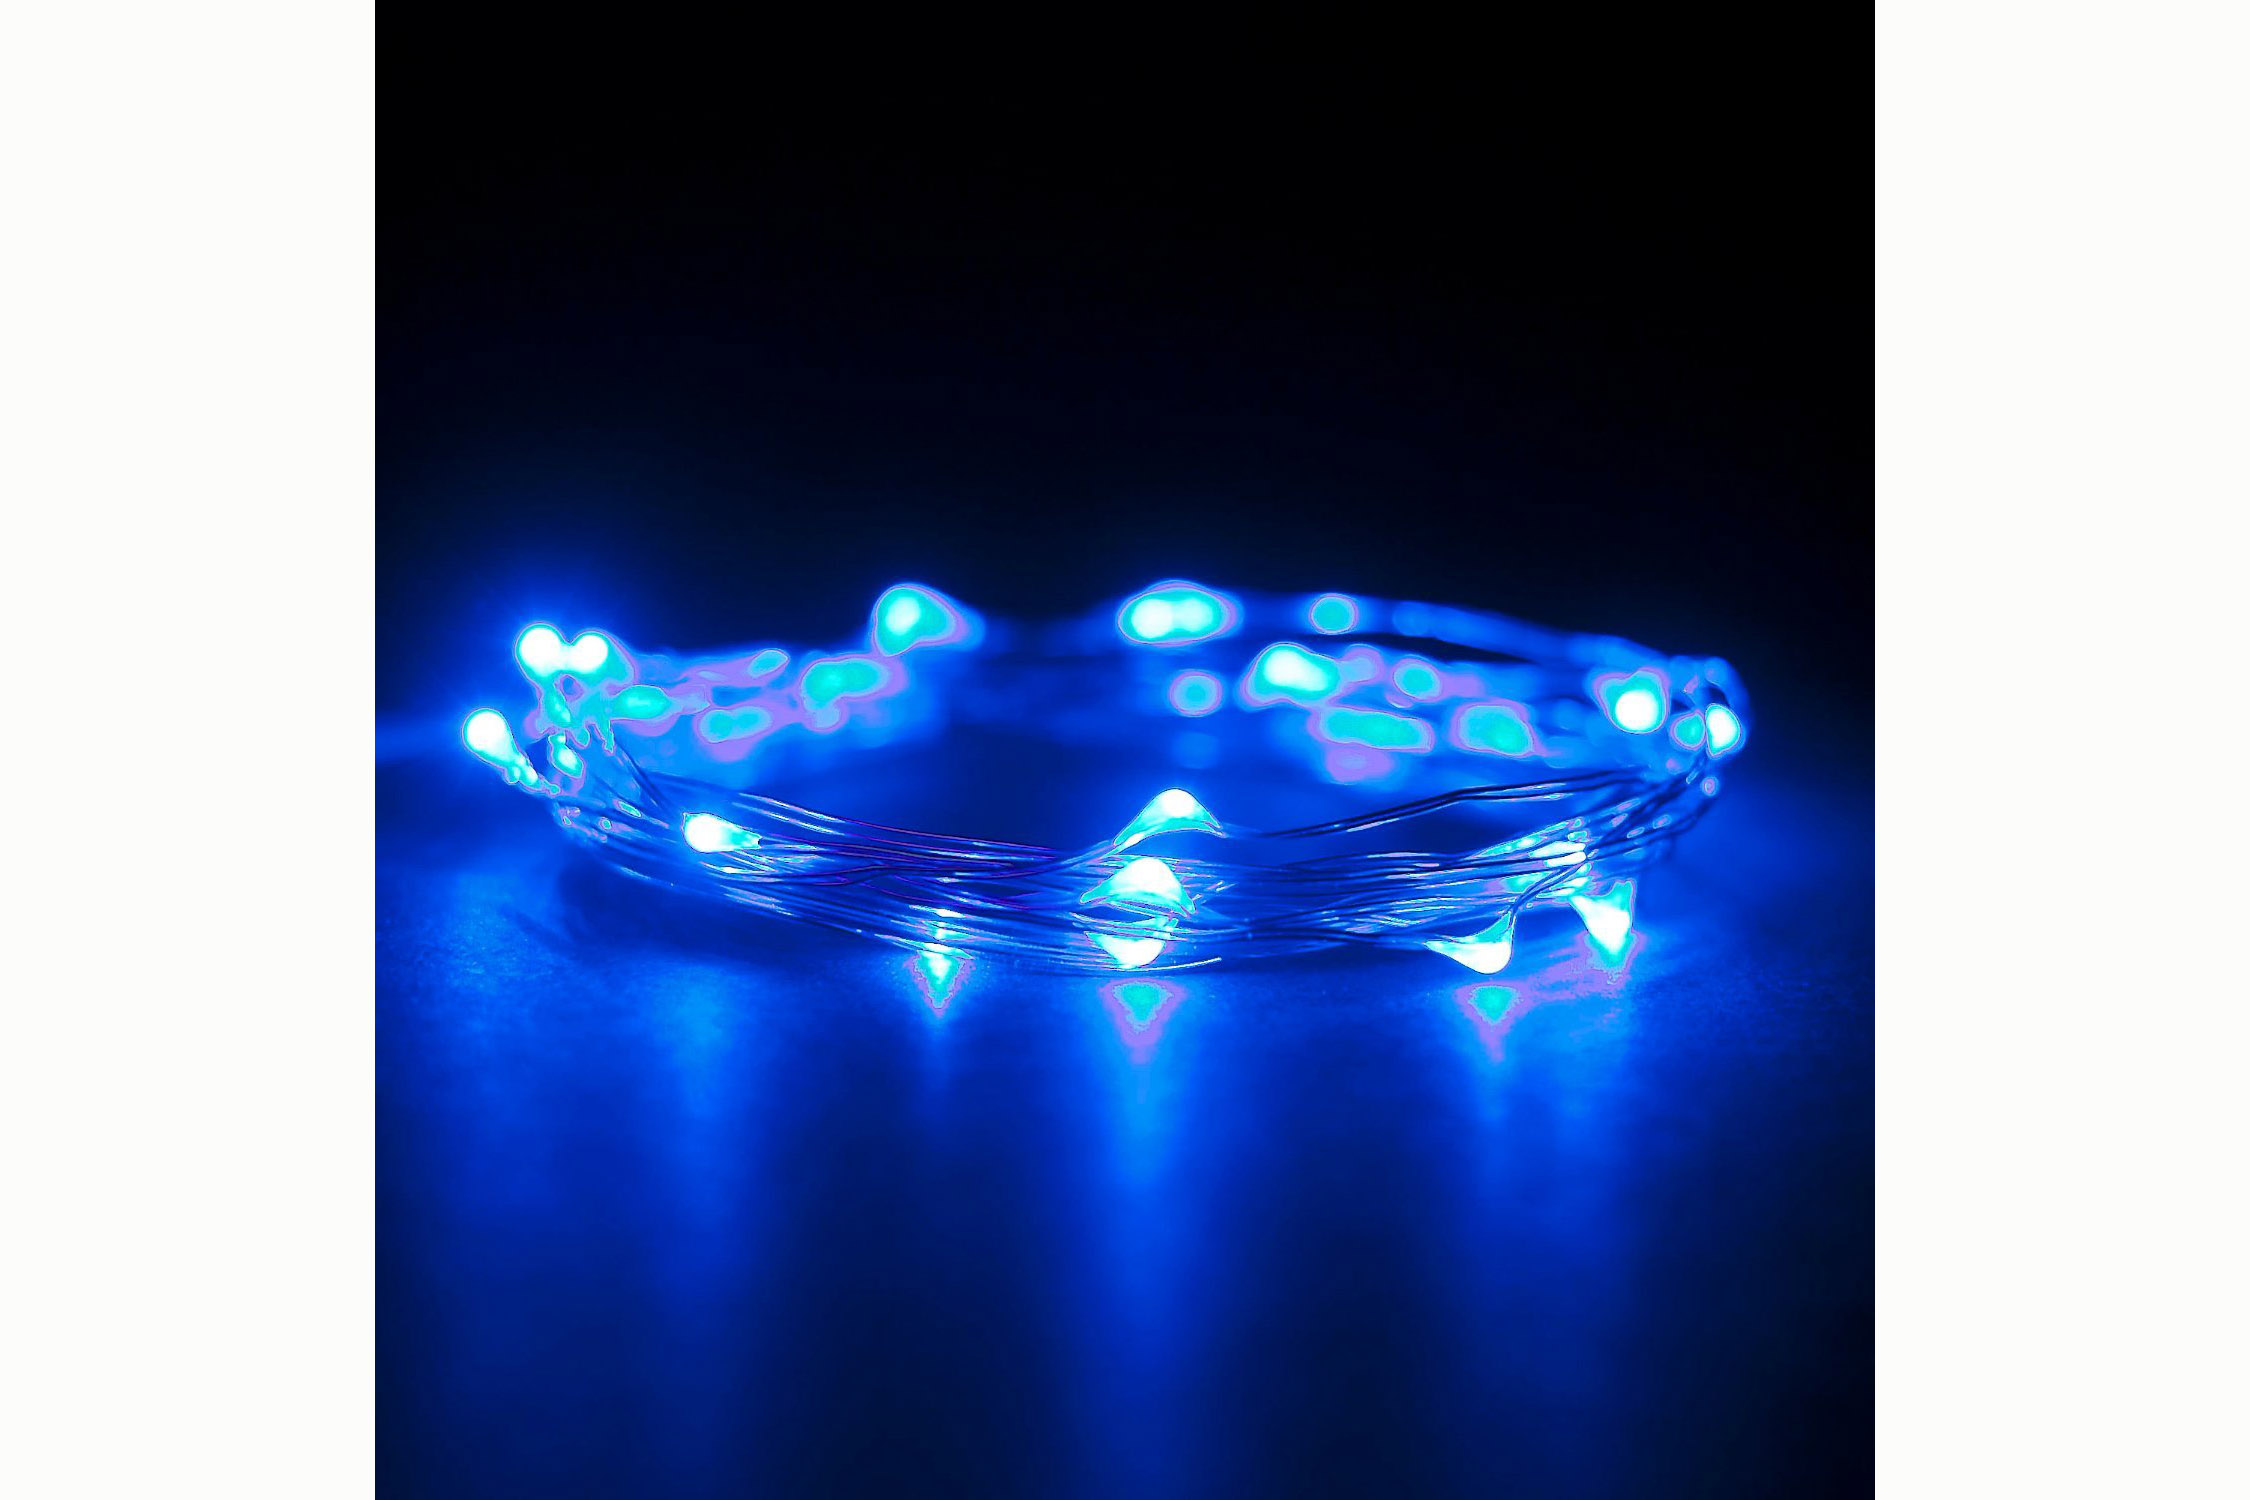 7 Foot, 20 LEDs on clear cable -4.5 stars - $6 (Prime)